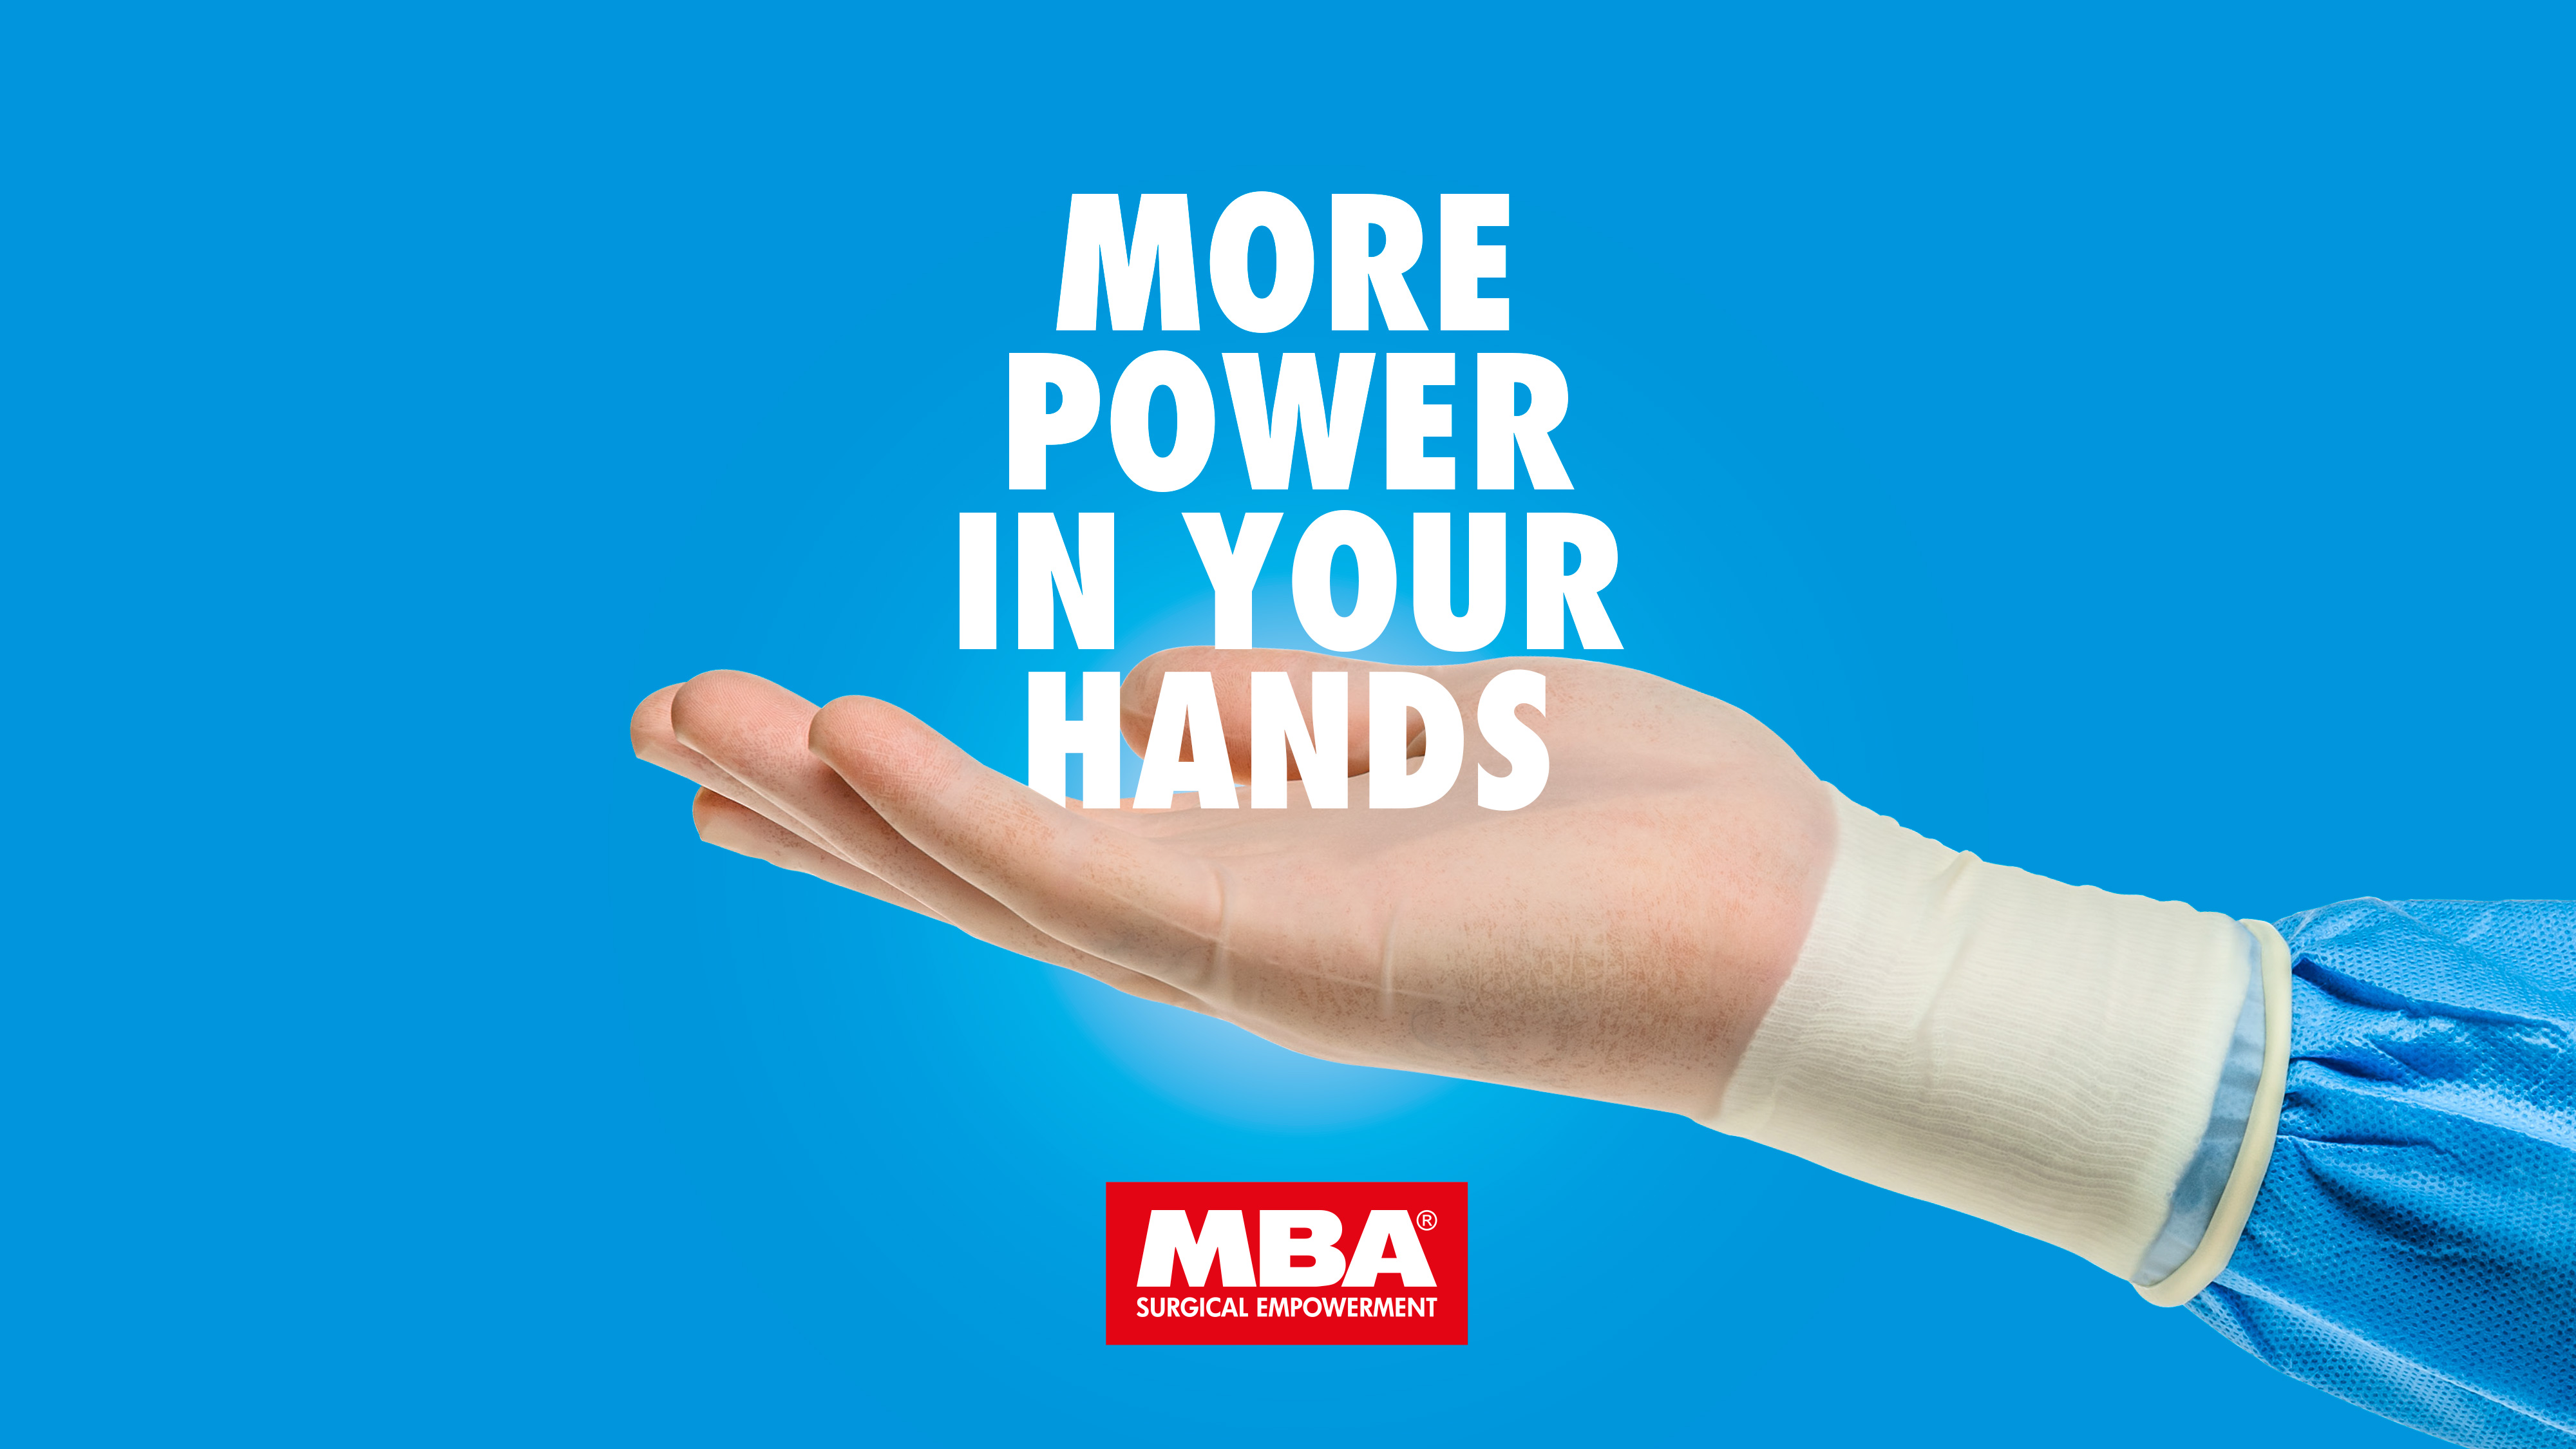 MBA Surgical Empowerment